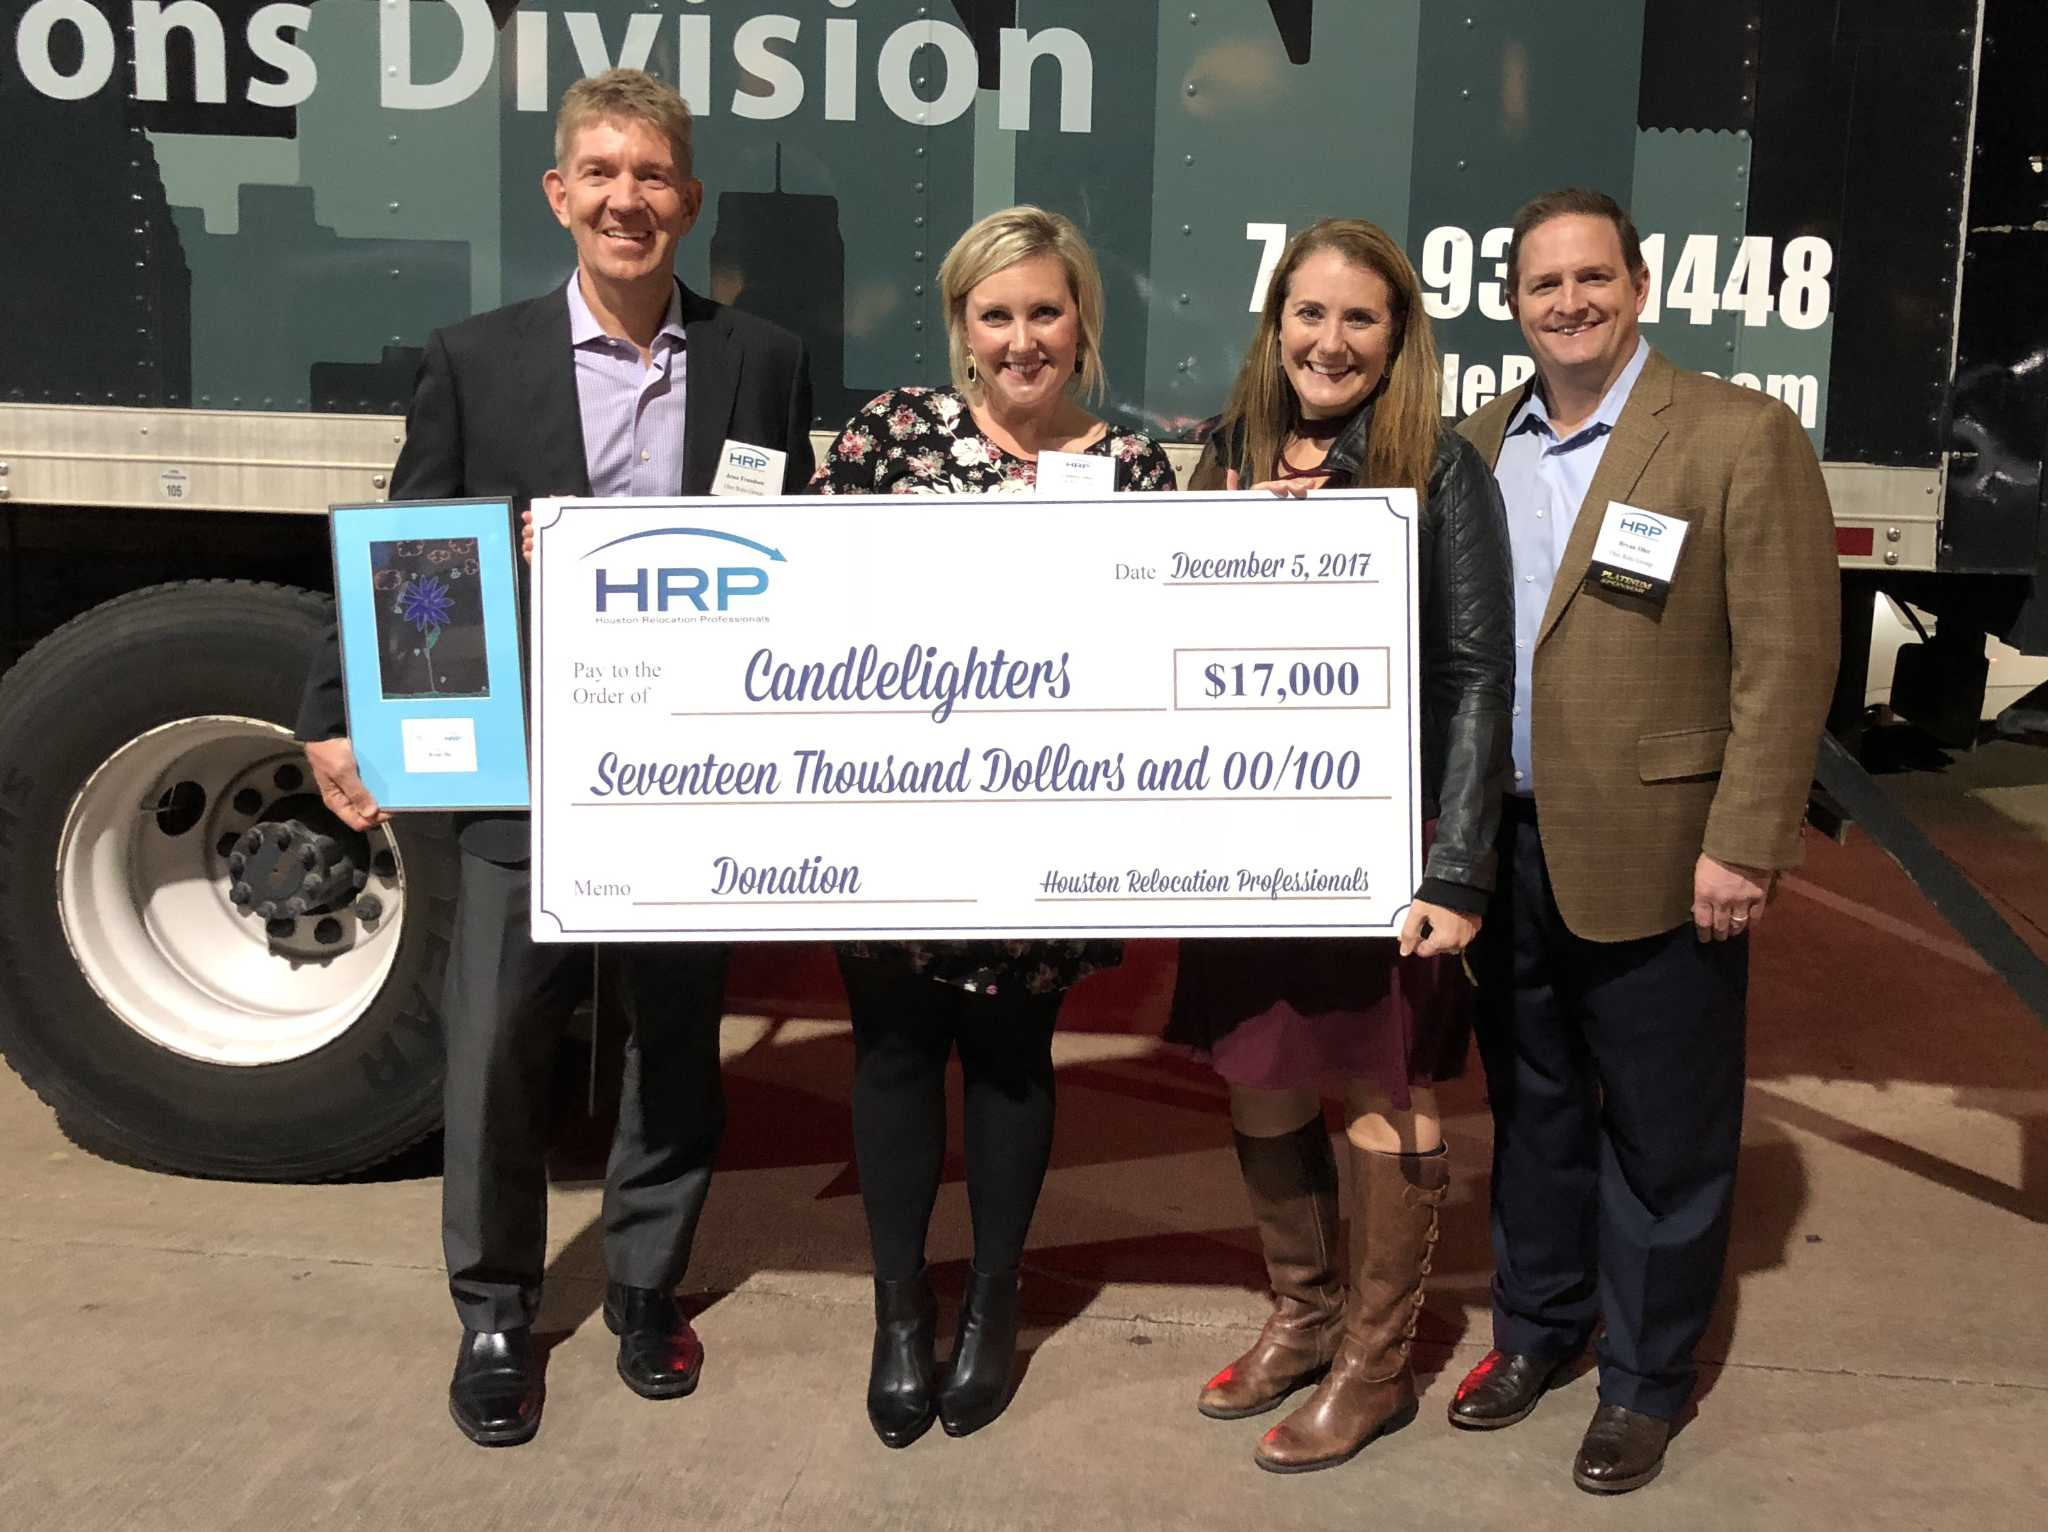 On the move: Houston Relocation Professionals celebrates annual giving